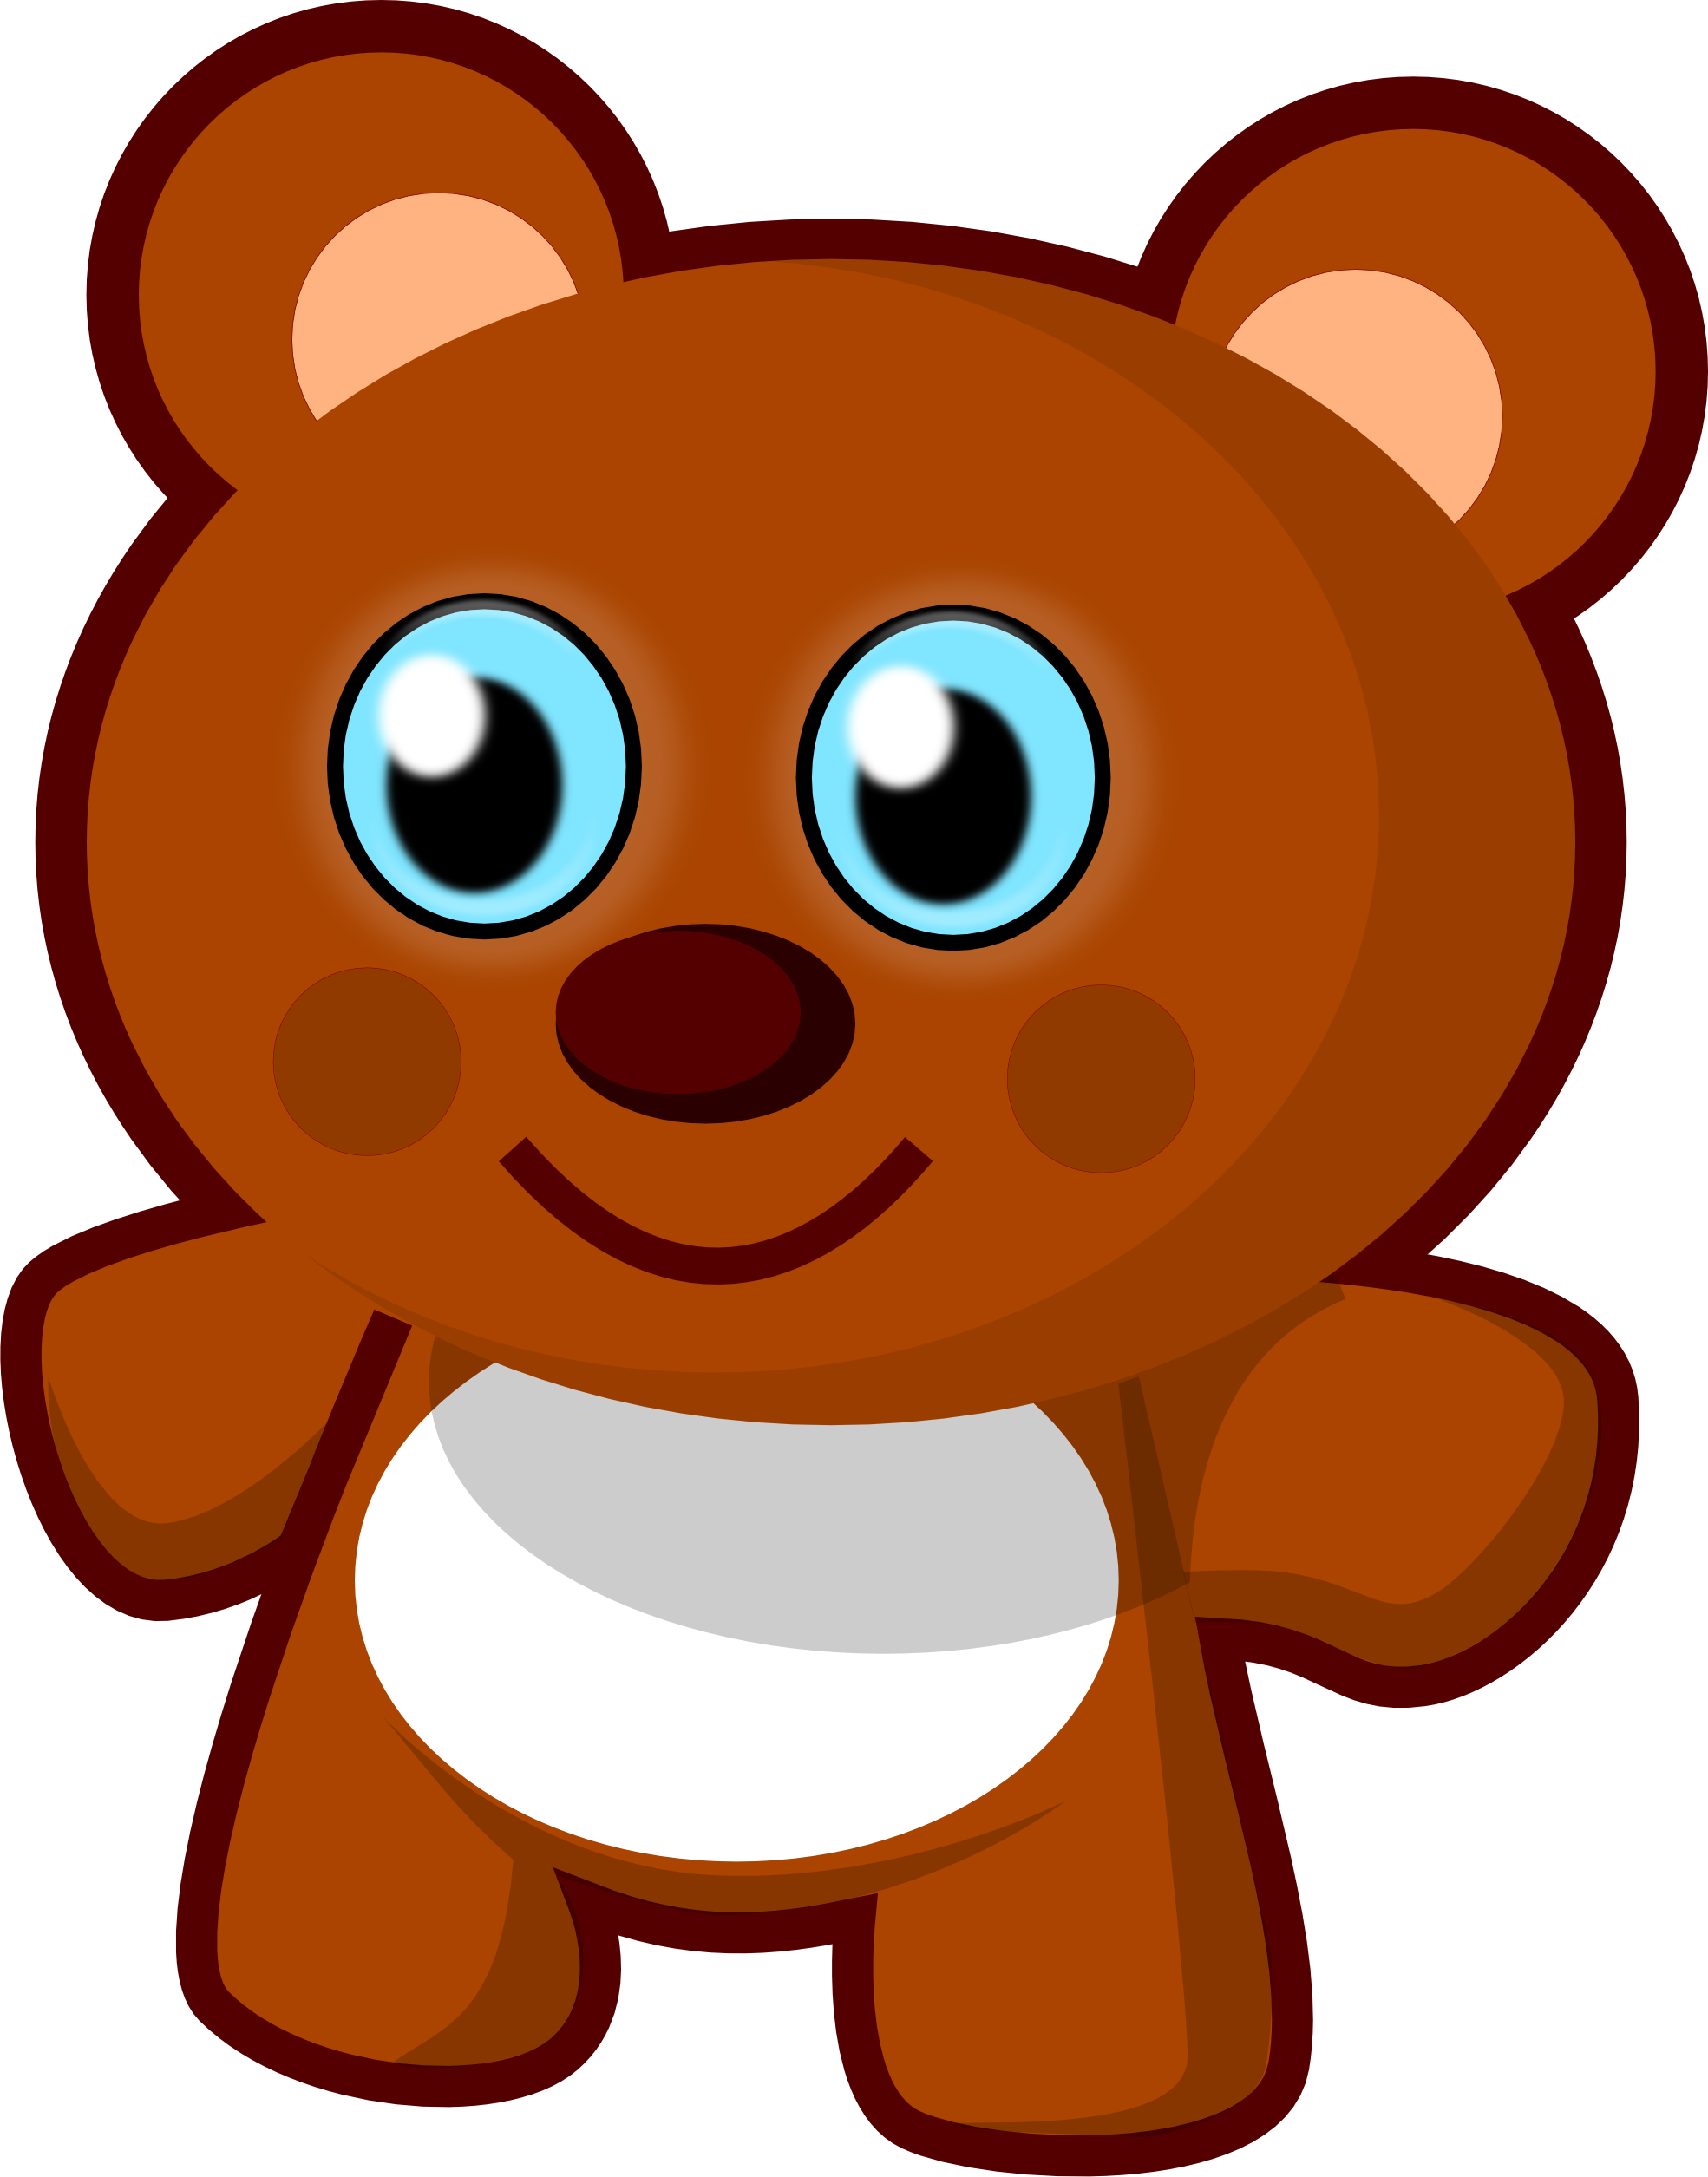 1969x2510 Cute Animal Png Hd Transparent Cute Animal Hd.png Images. Pluspng